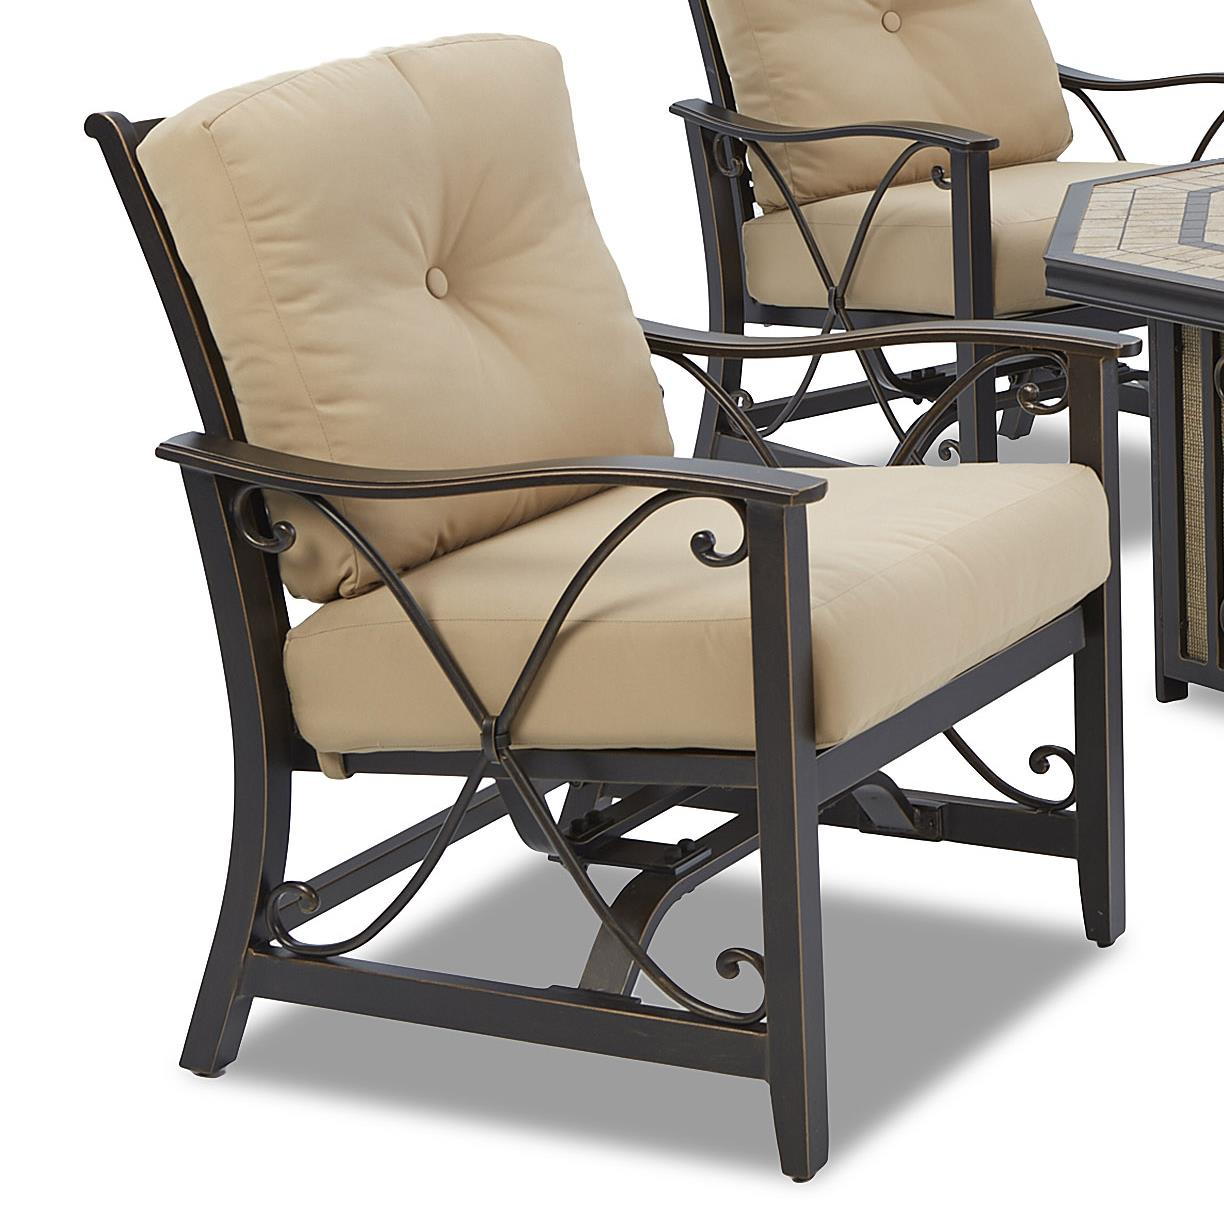 Klaussner Outdoor Embers Cushioned Spring Chair - 2 Pack - Item Number: W6005 C